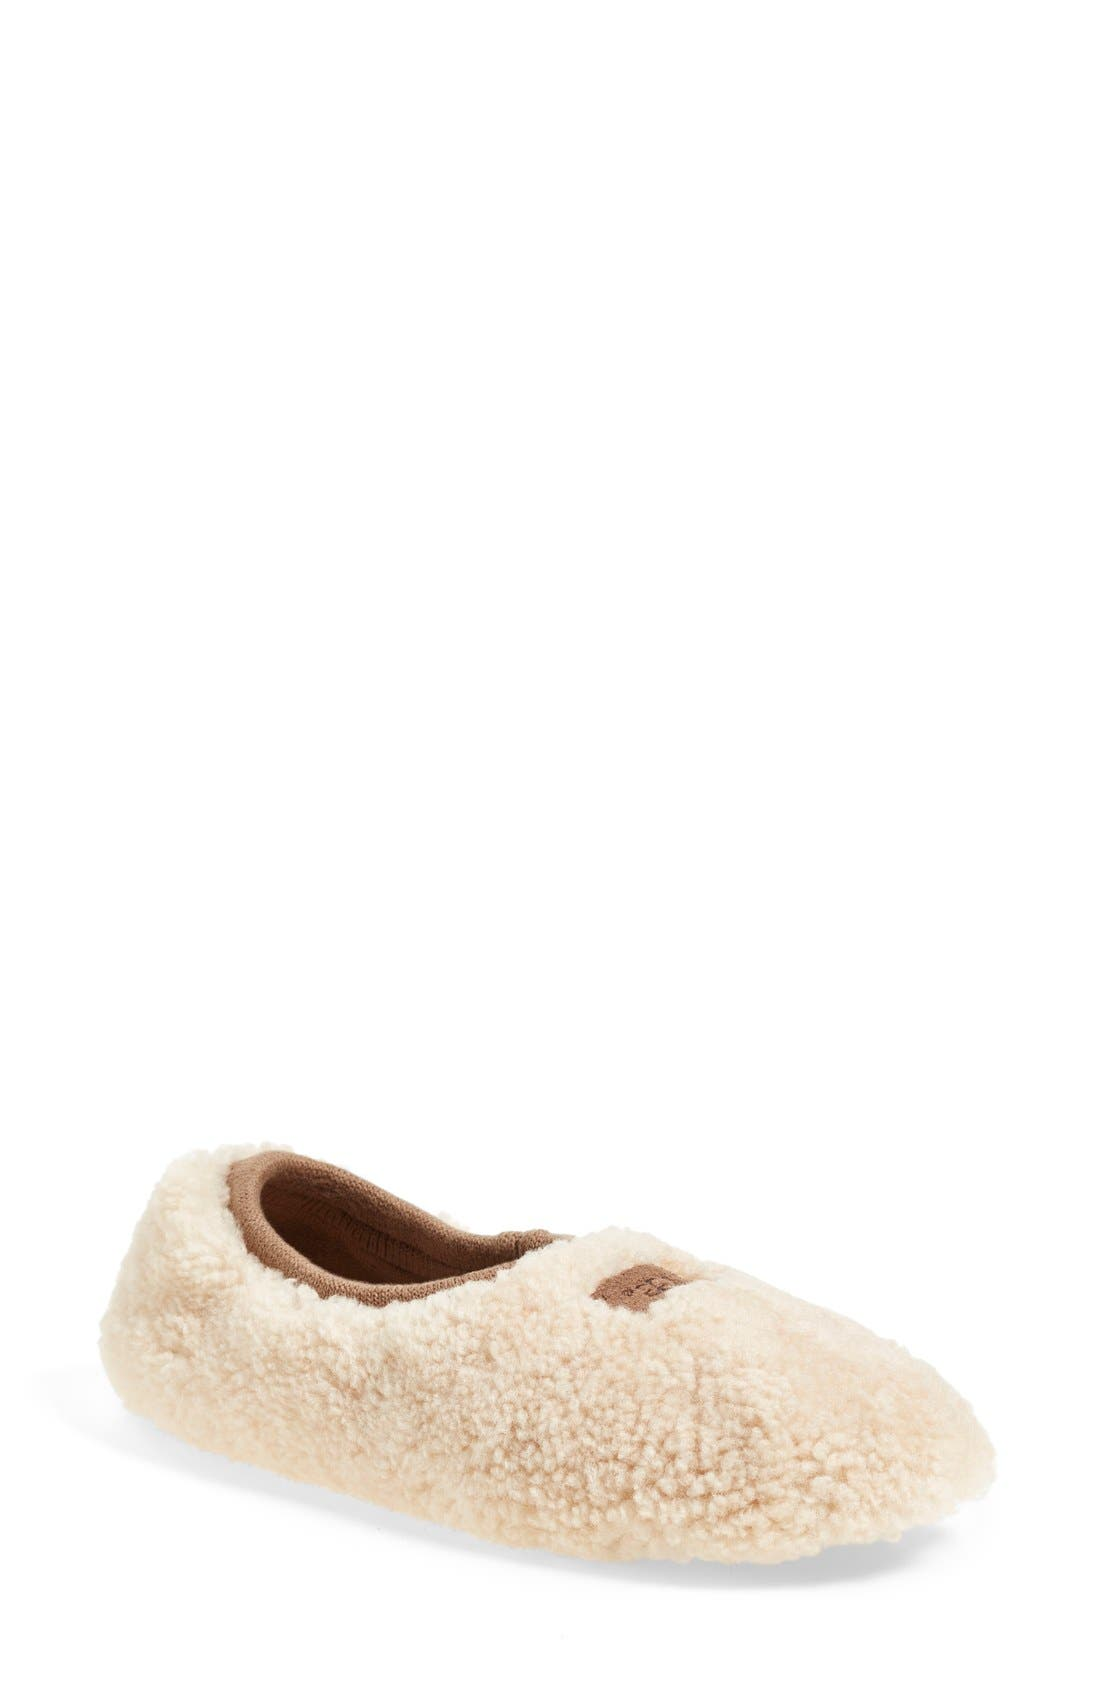 Birche Slipper,                             Main thumbnail 1, color,                             NATURAL